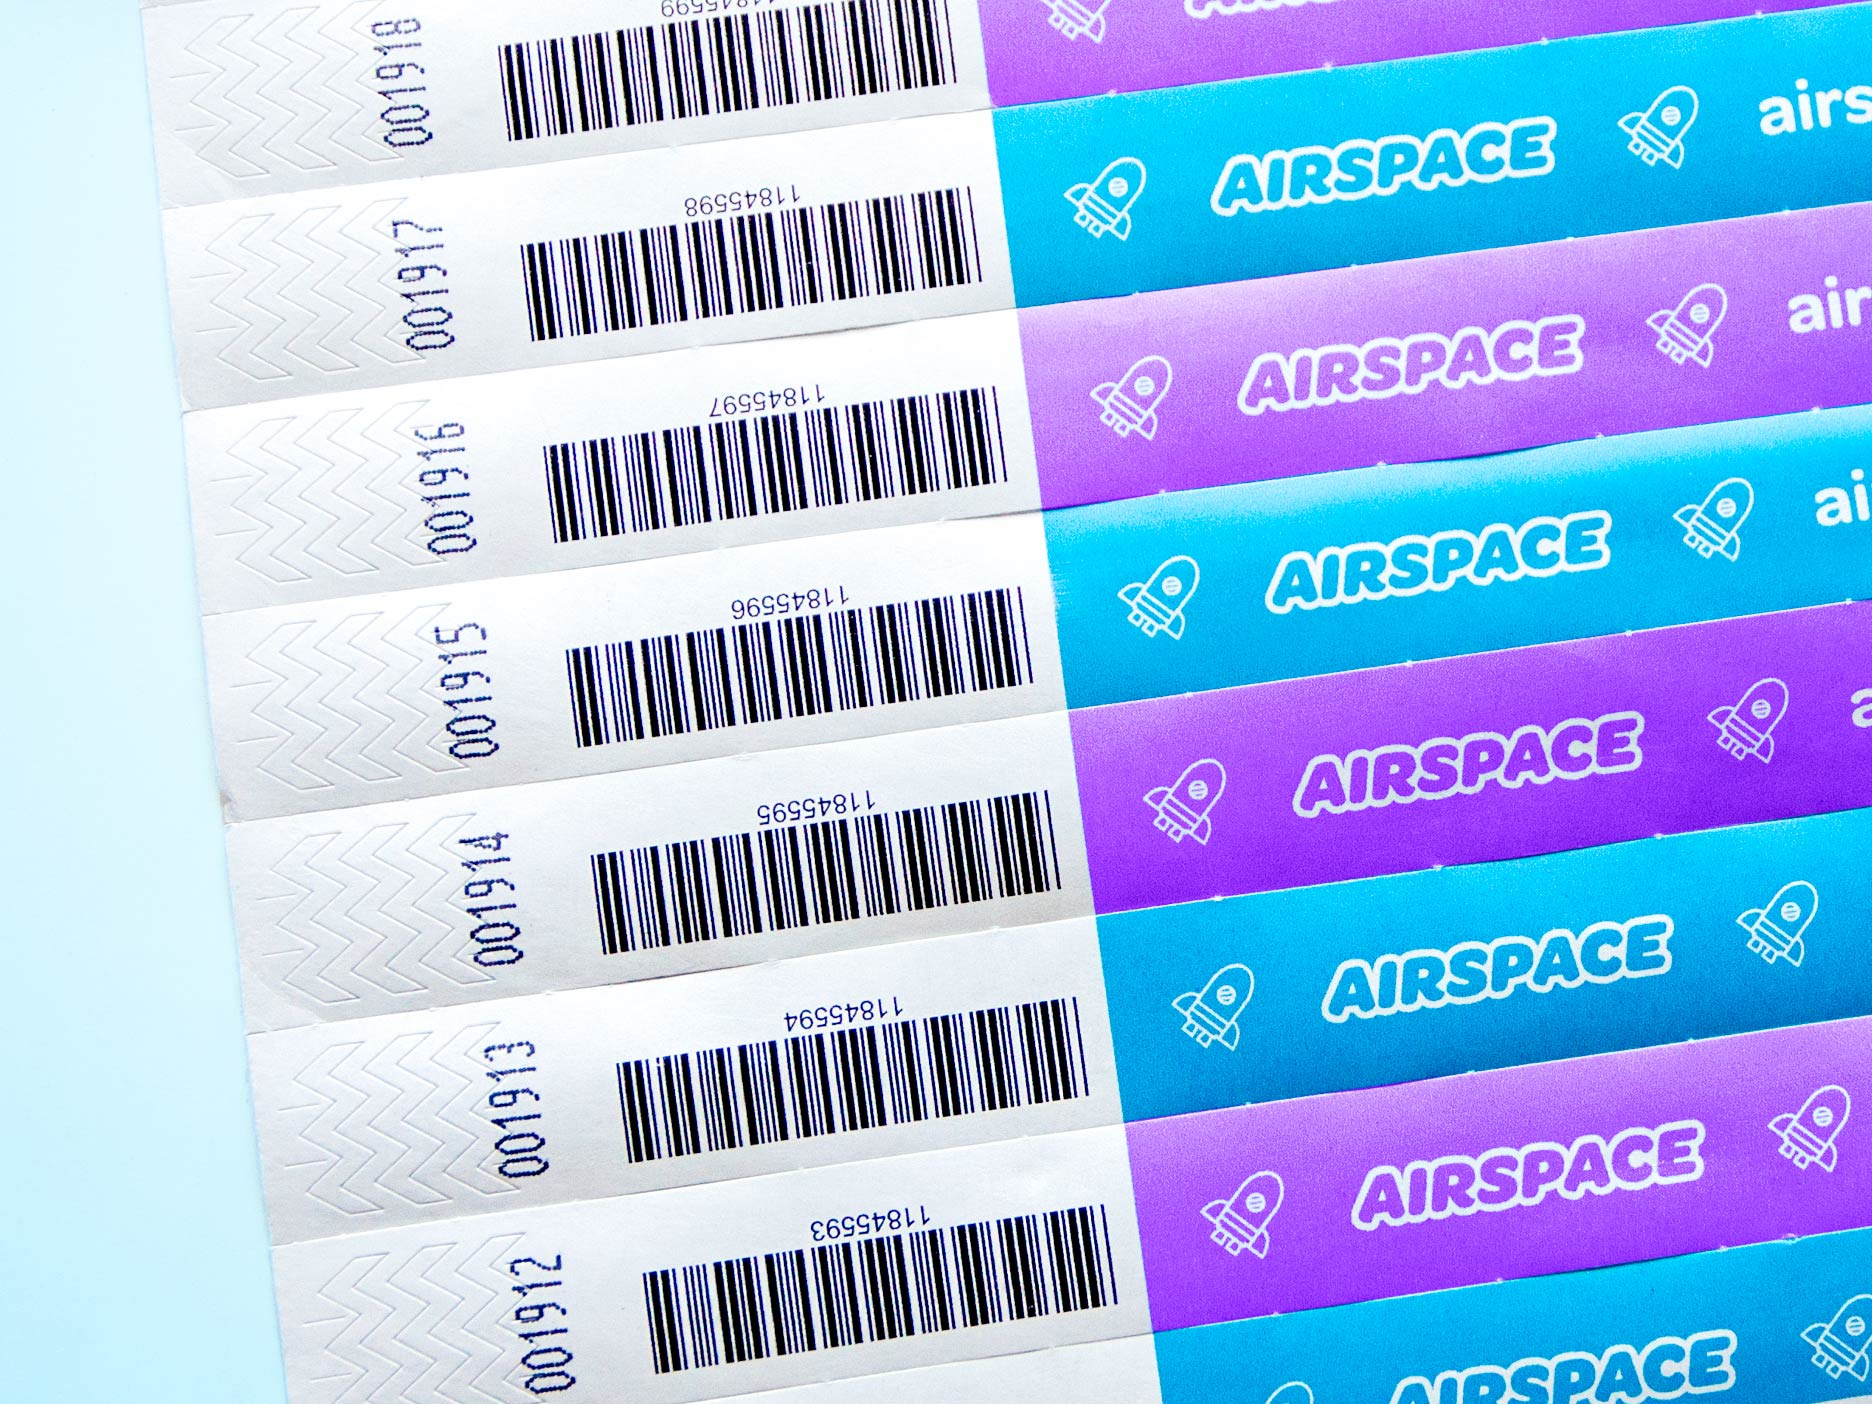 Photo of a Airspace Tyvek® Wristbands